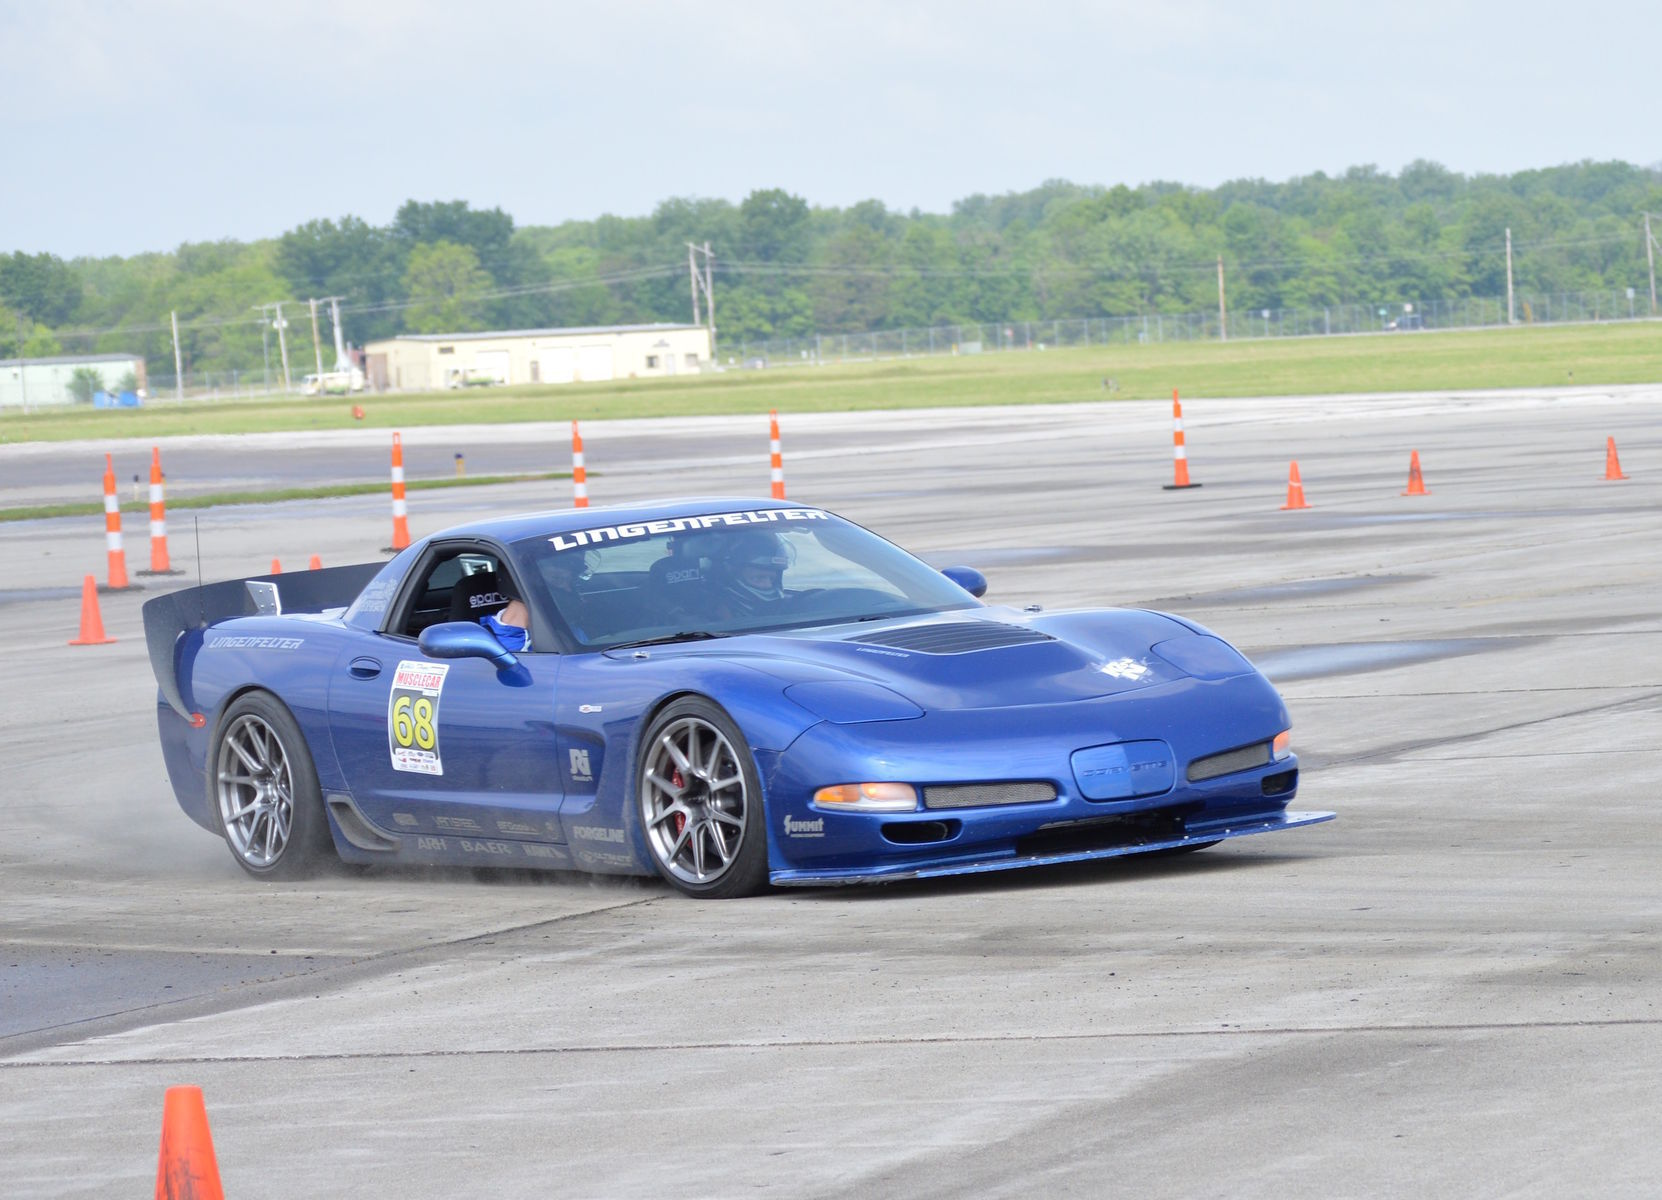 2003 Chevrolet Corvette Z06 | Danny Popp's C5 Corvette Z06 on Forgeline One Piece Forged Monoblock GS1R Wheels